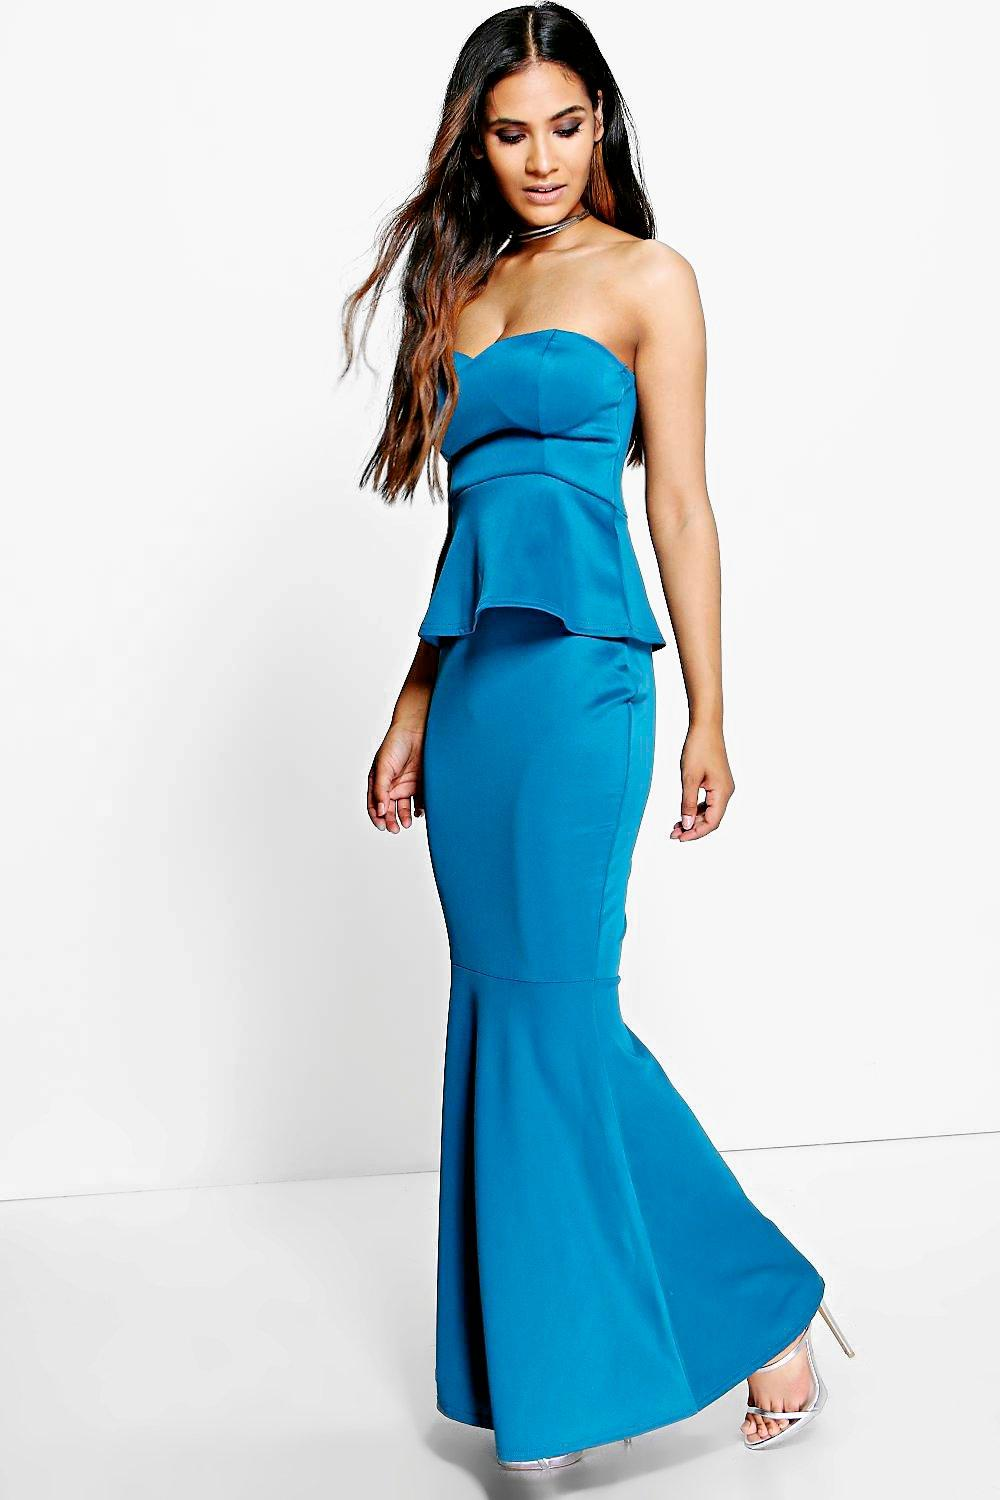 Gilia Sweetheart Peplum Fishtail Maxi Dress